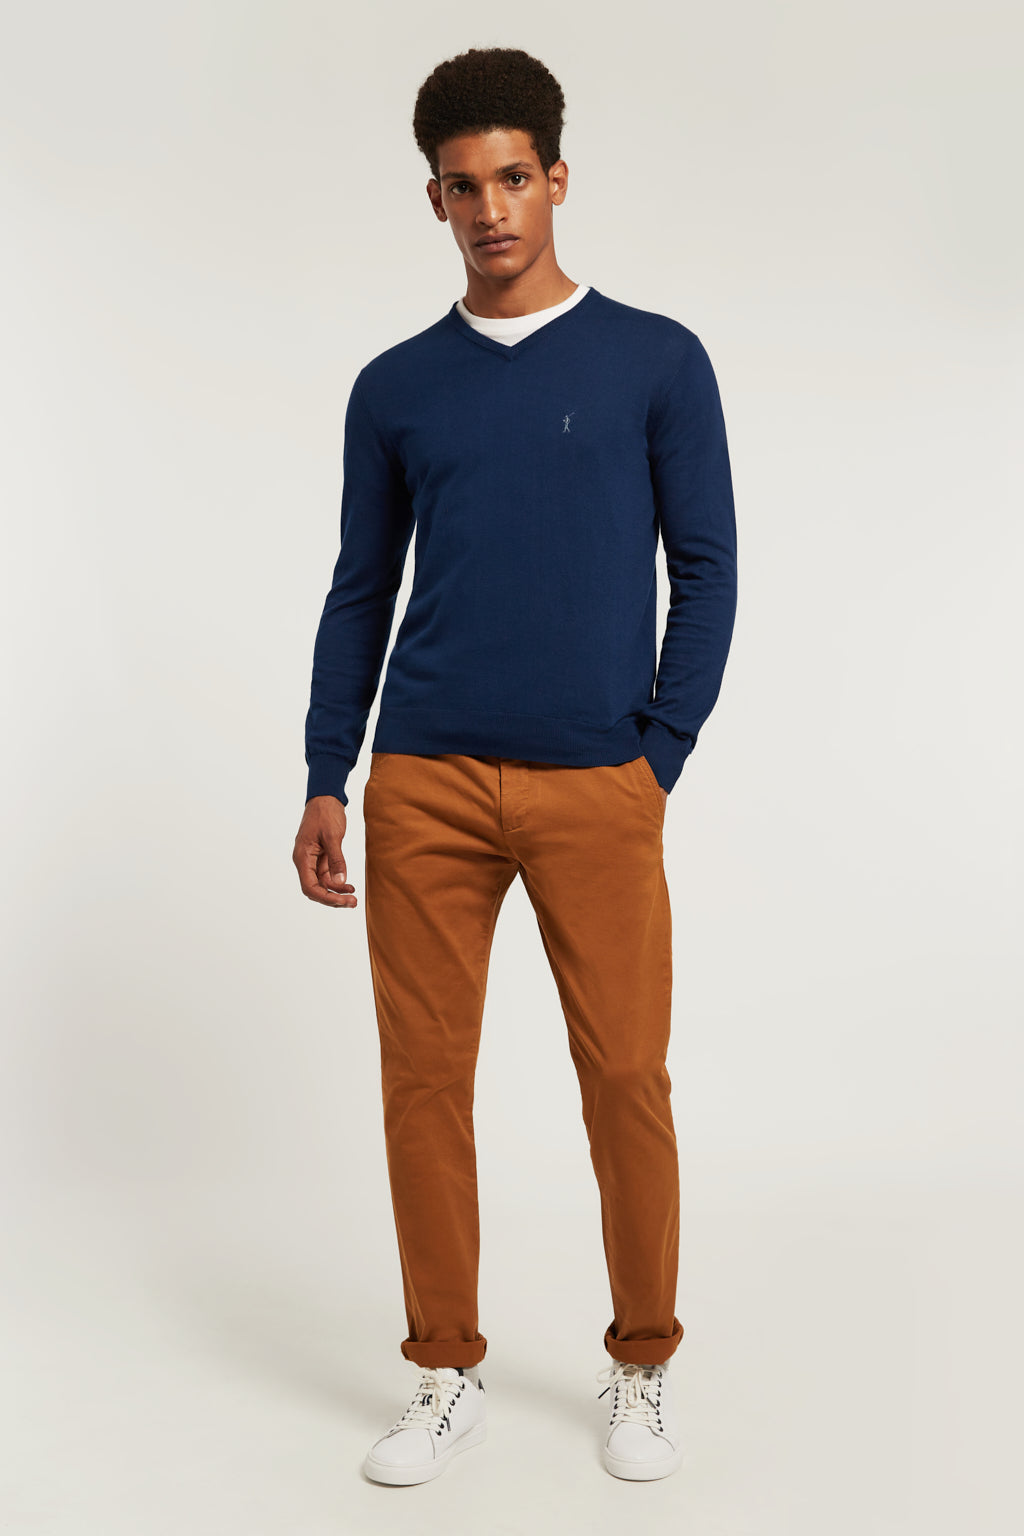 Indigo blue V-neck jumper with embroidered logo